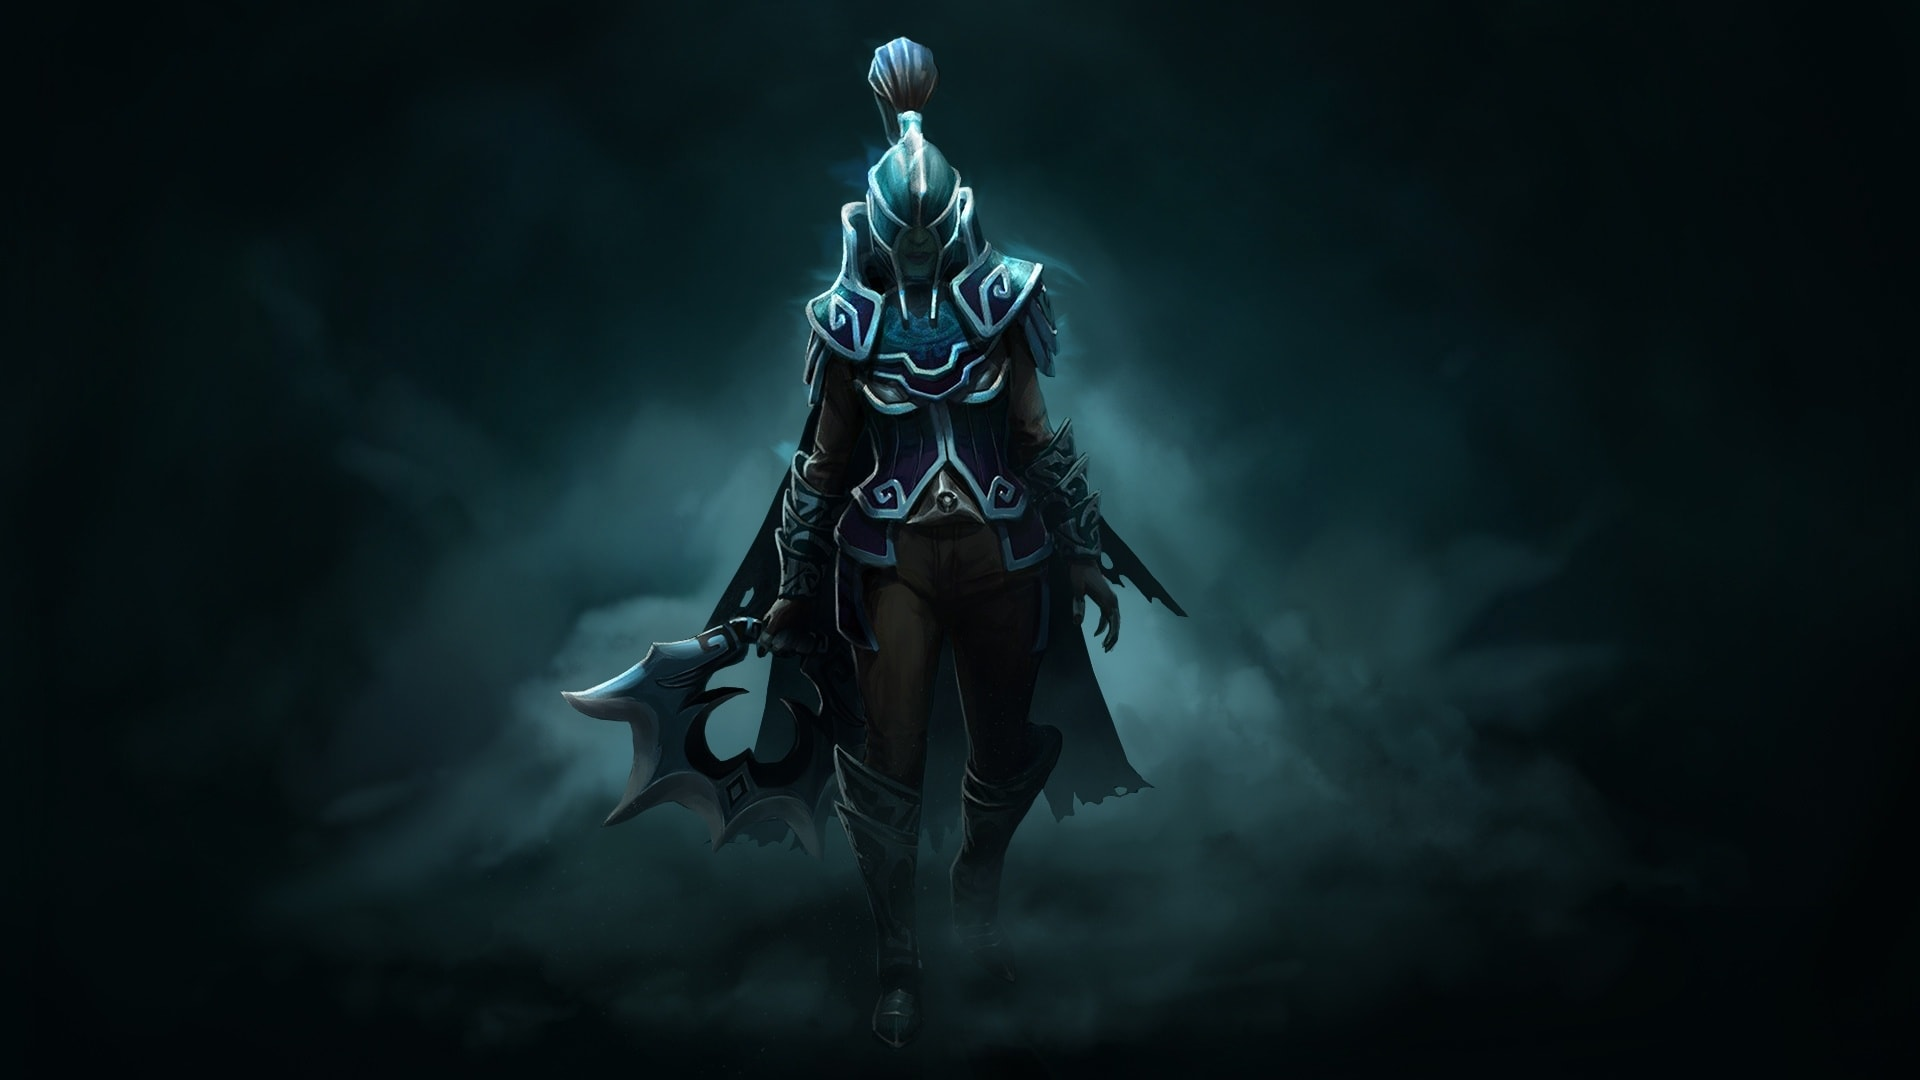 Dota2 : Phantom Assassin Wallpaper